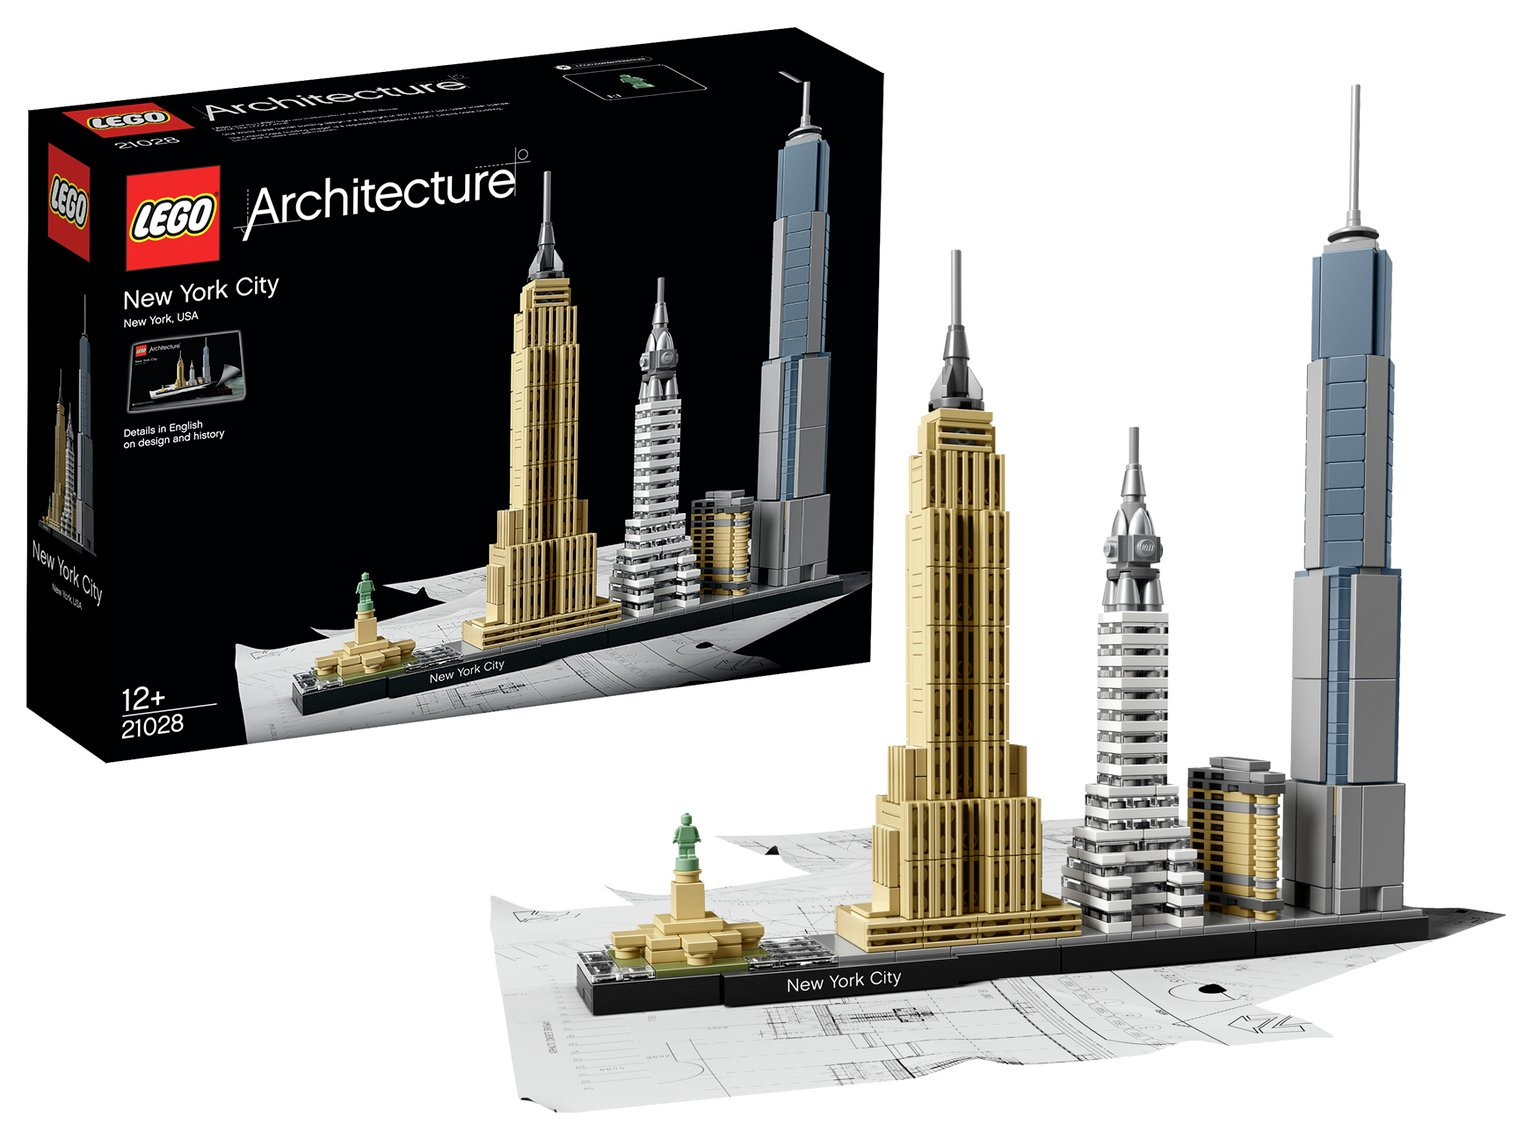 LEGO Architecture New York City - 21028 from LEGO